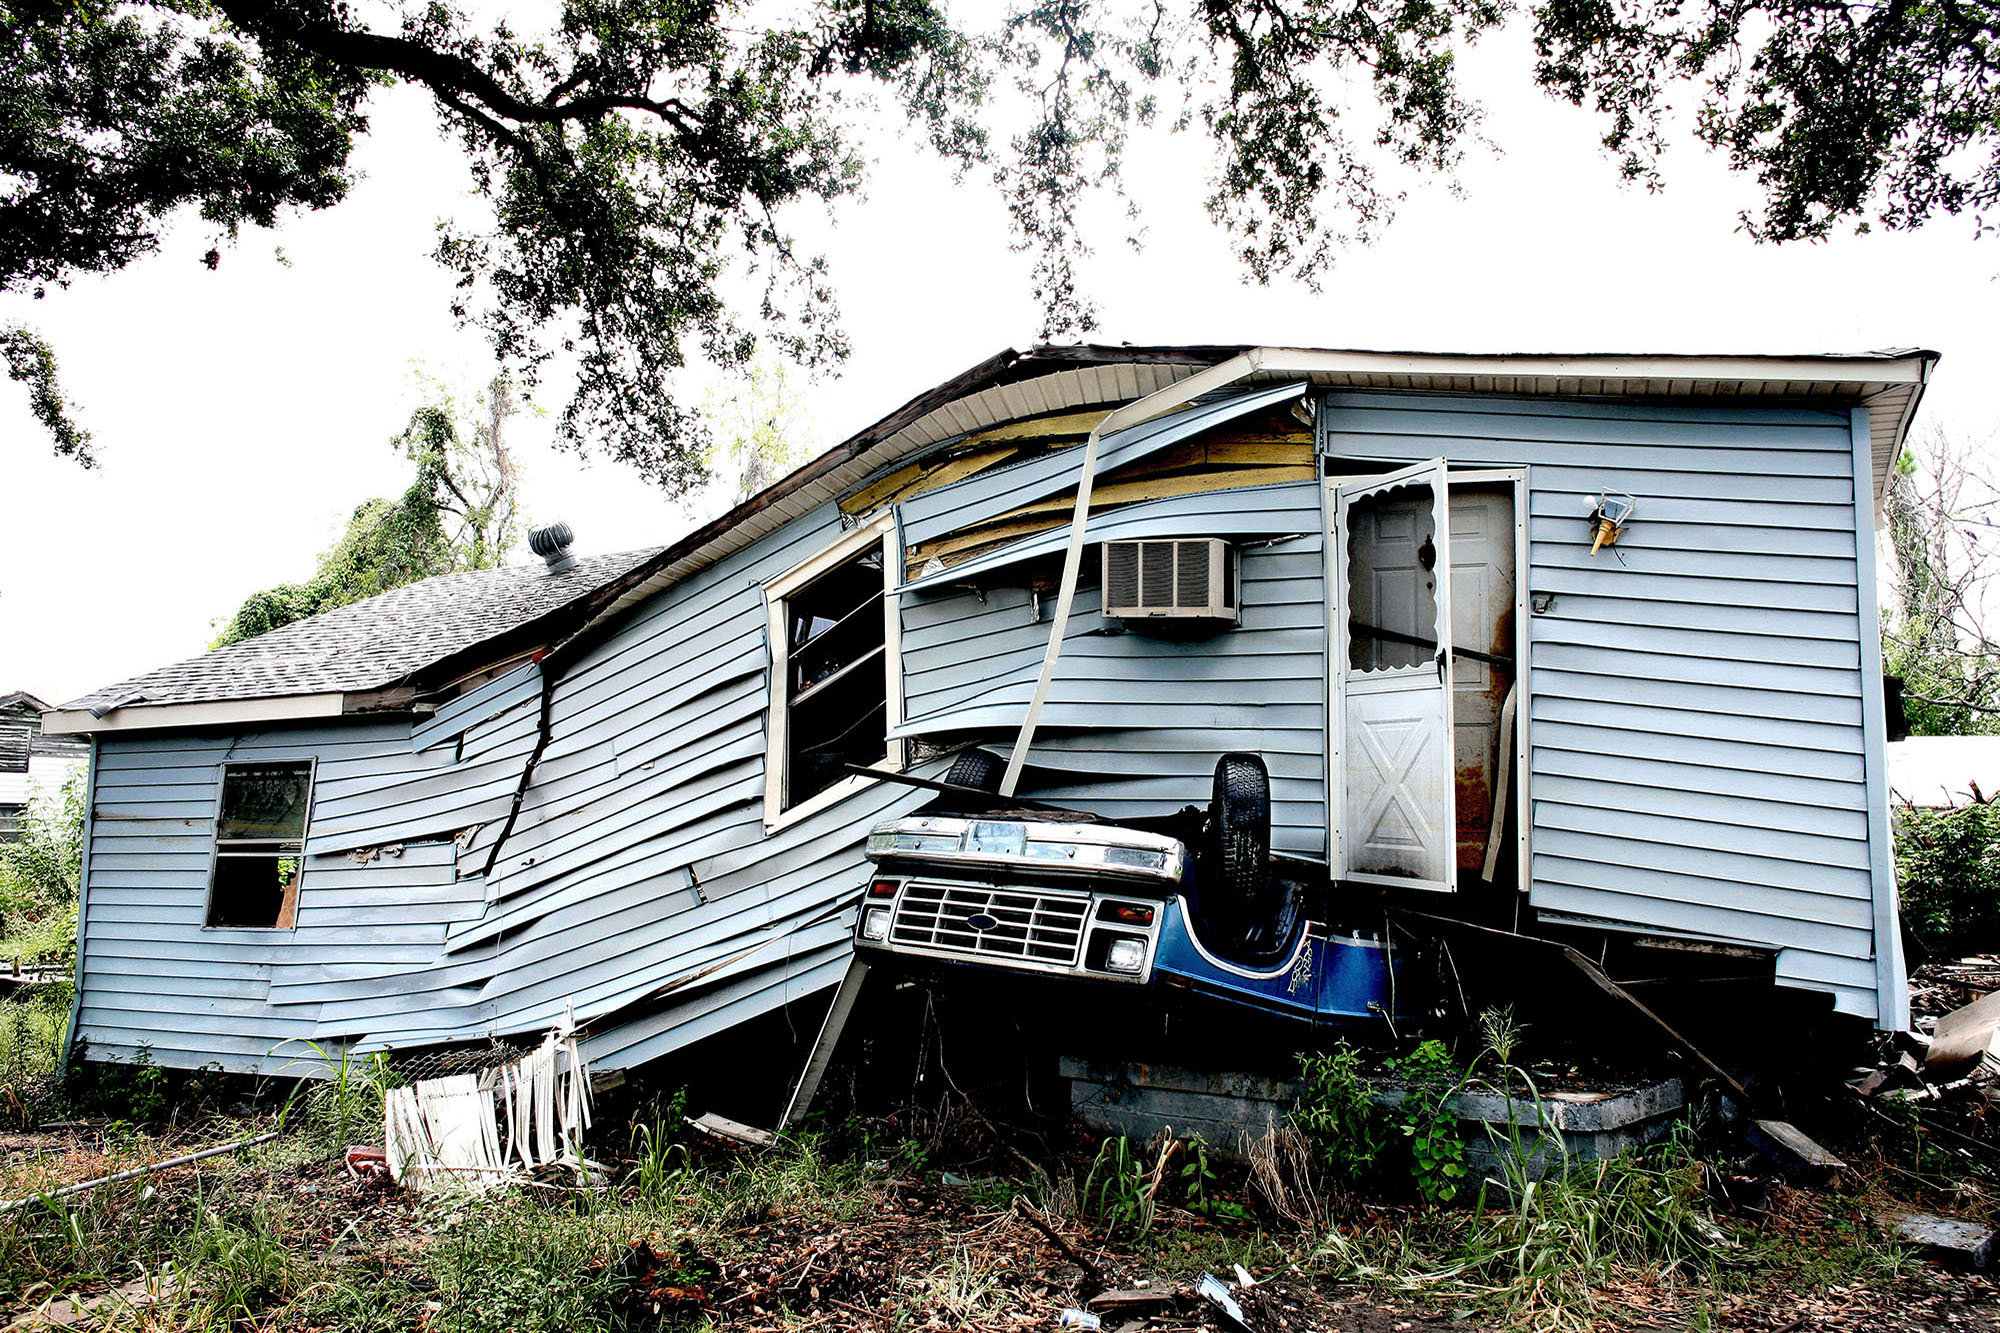 A house in Lower Ninth Ward one year after the hurricane.